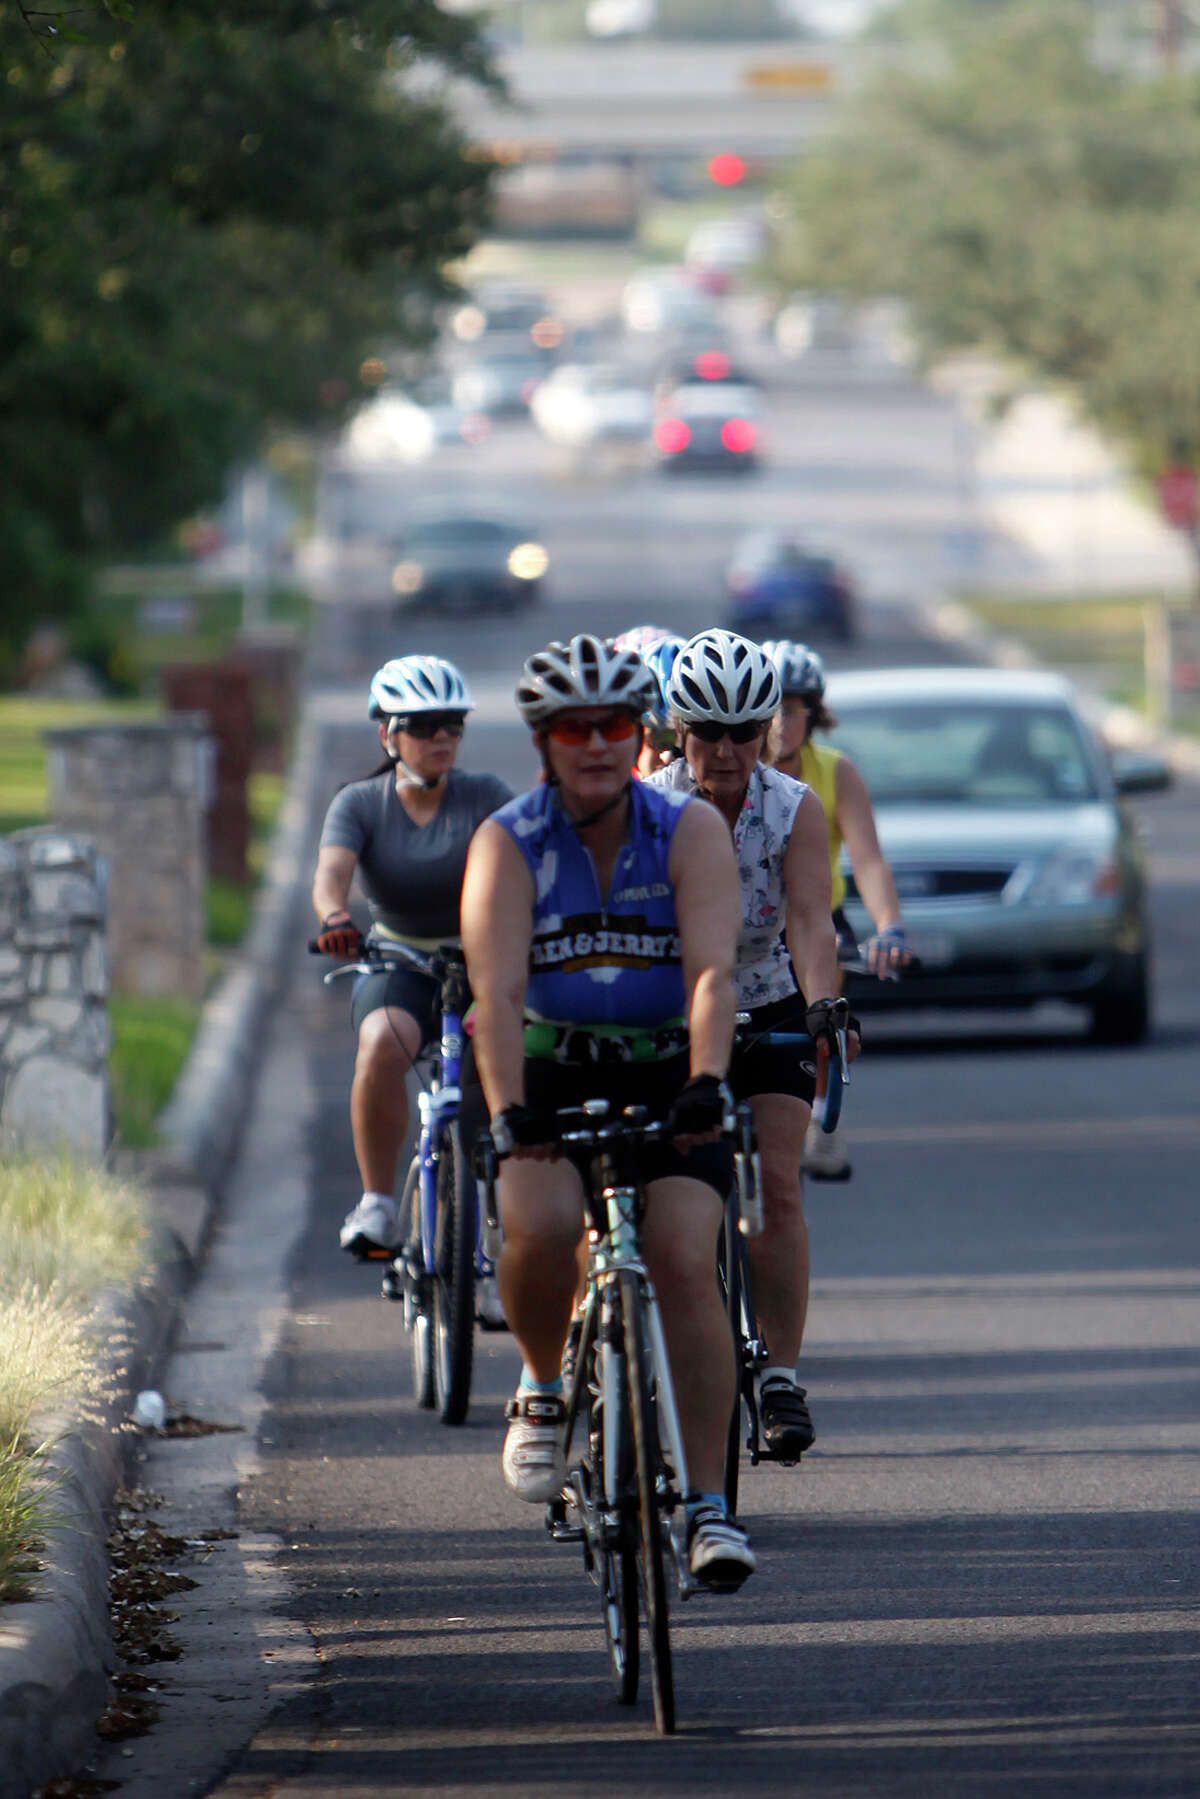 Cars have to give bicyclists three feet of space when passing; larger trucks have to allow six feet.